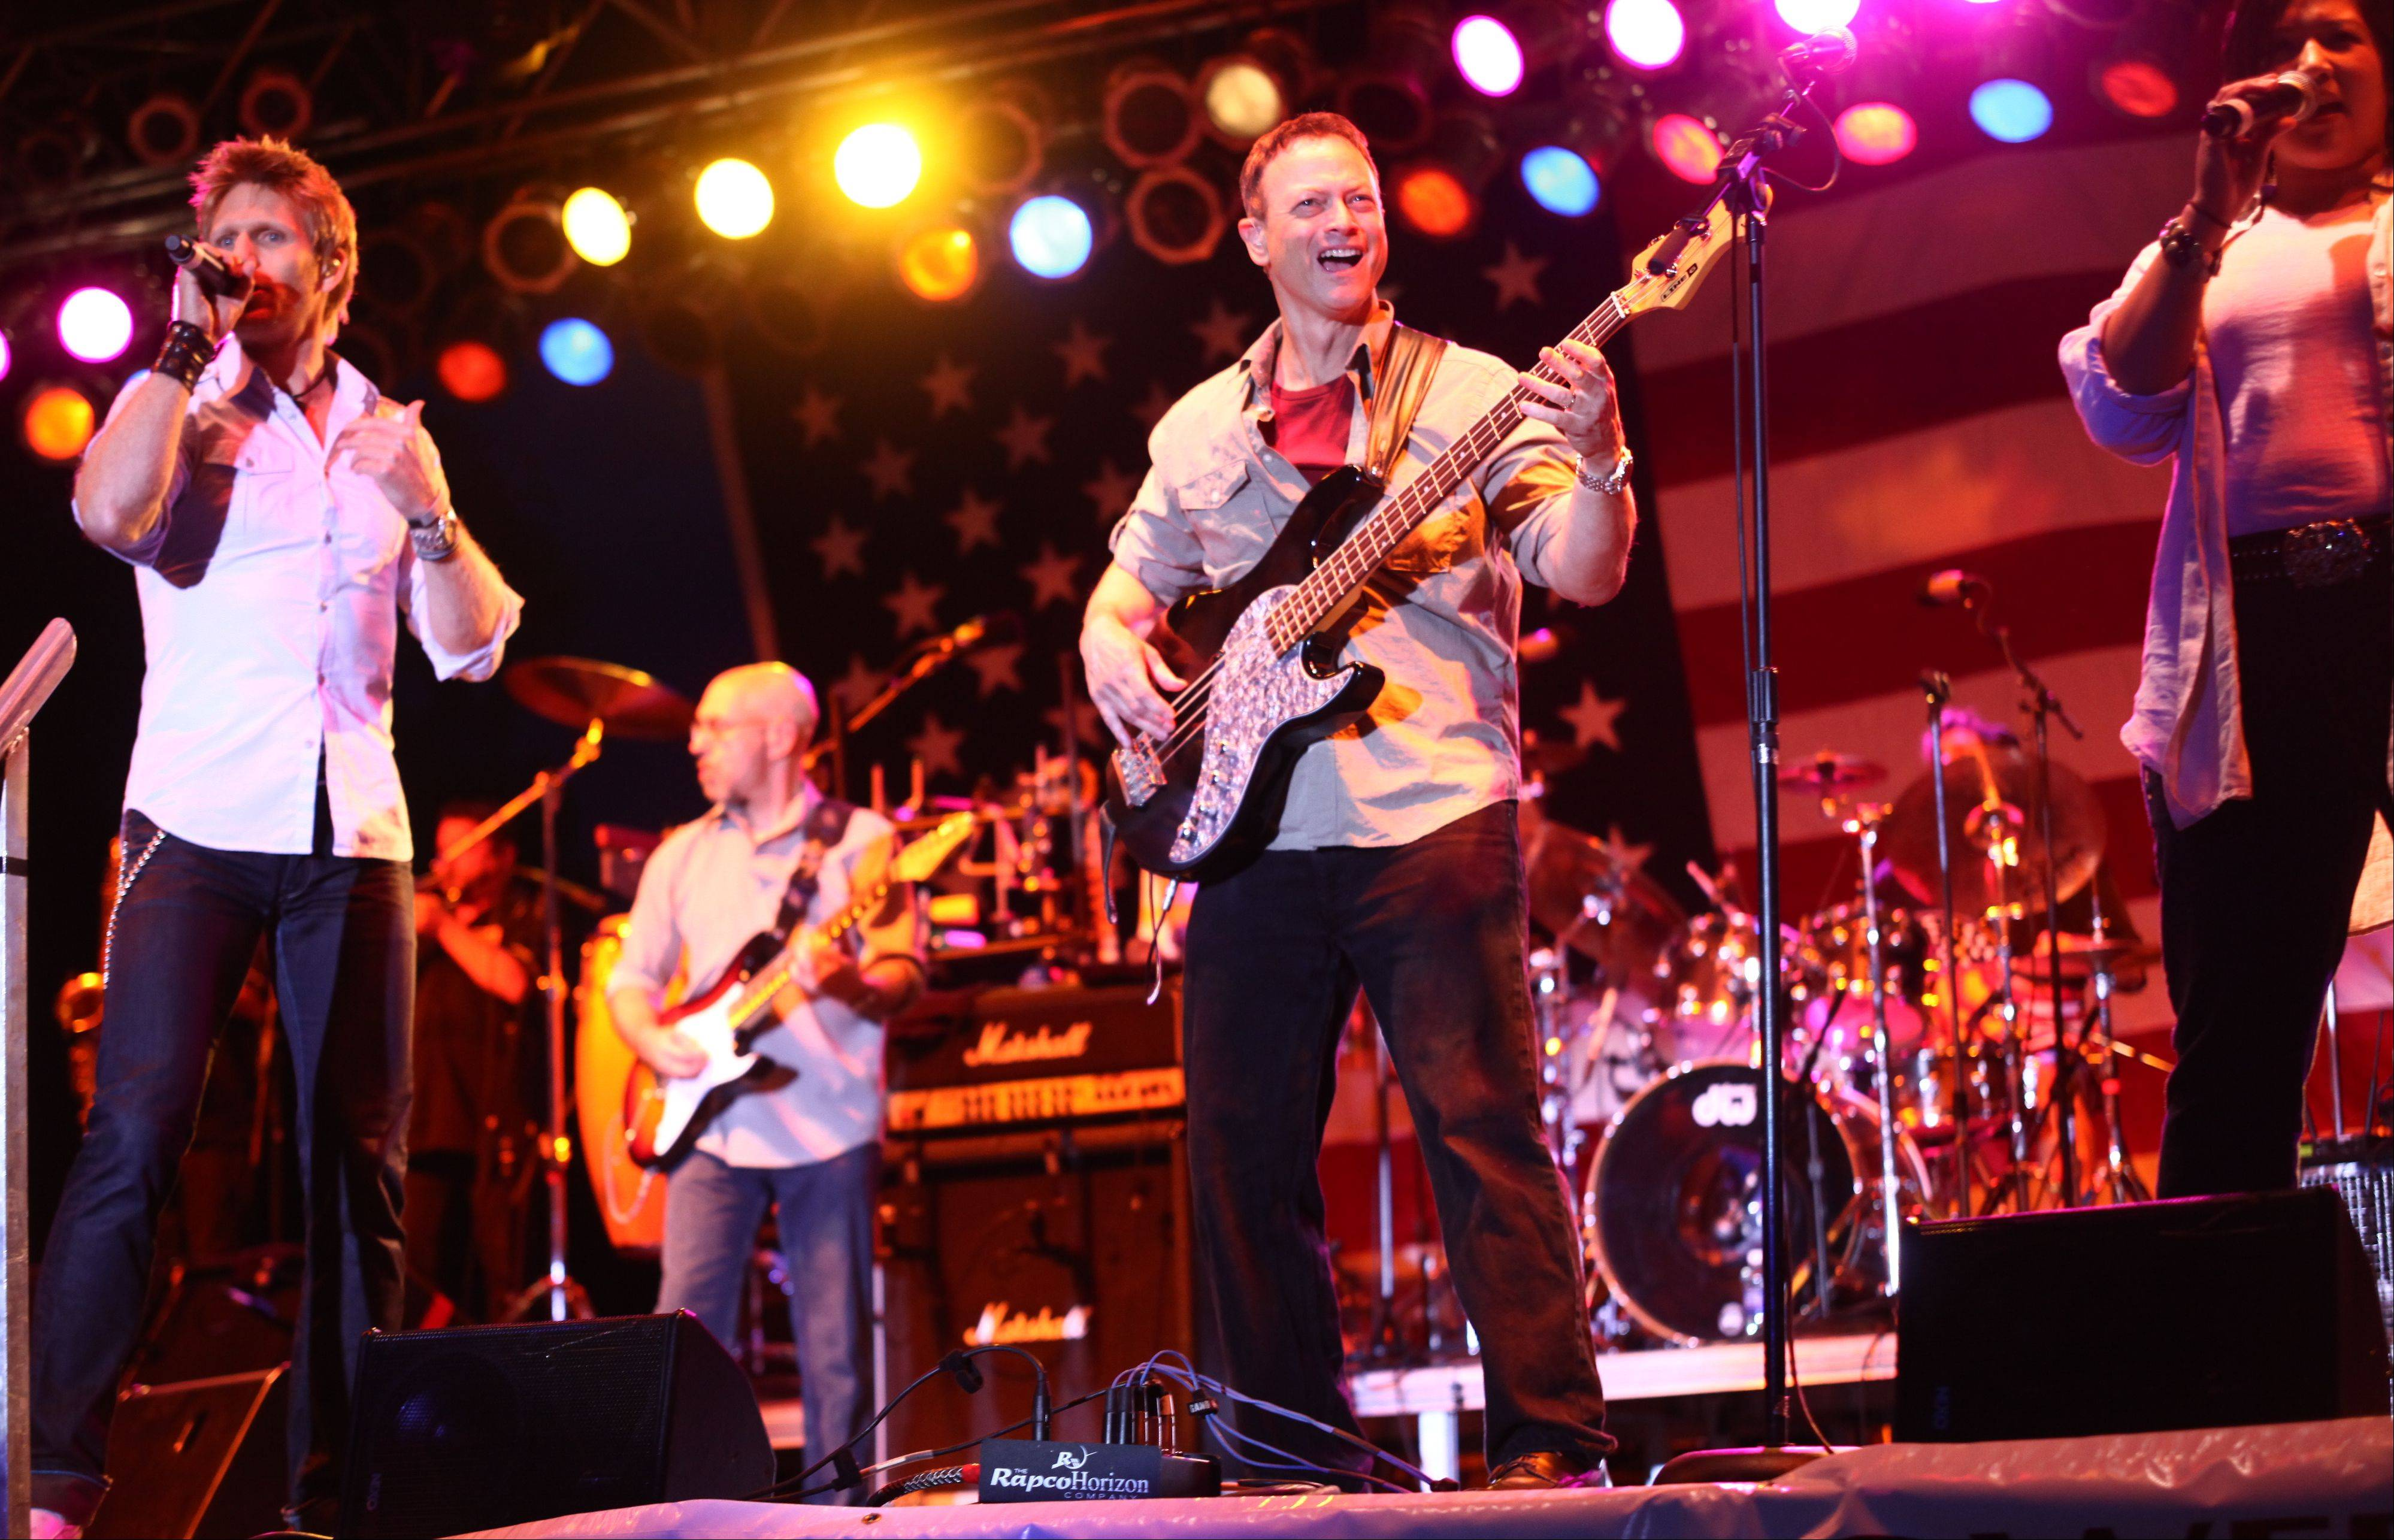 Gary Sinise, center, and the Lt. Dan Band are a staple at Operation Support Our Troops-America's summer benefit concert, Rockin' for the Troops. The sixth annual event will be Saturday, July 16, at Cantigny Park in Wheaton.